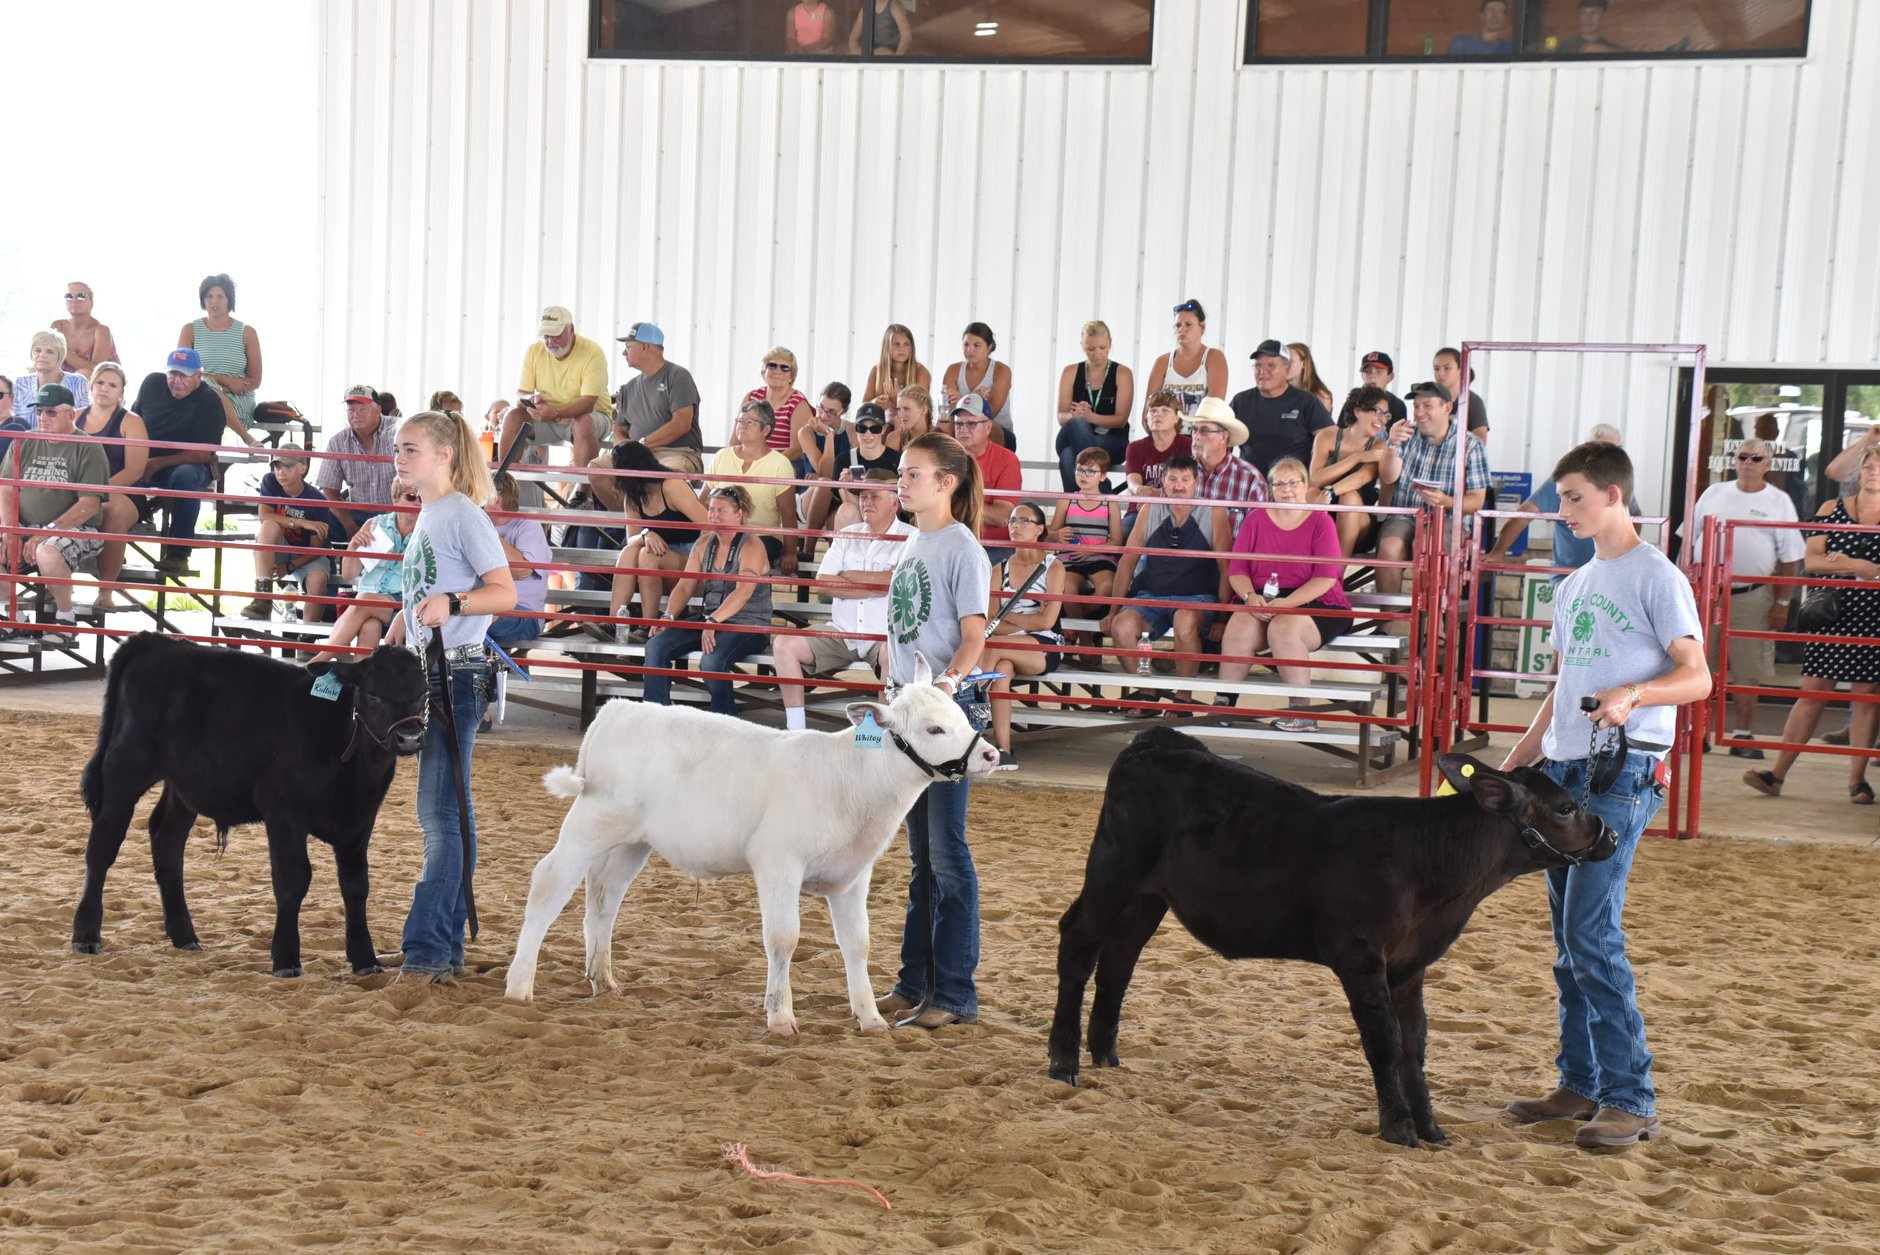 The 2020 Great Jones County Fair presented by Wellmark